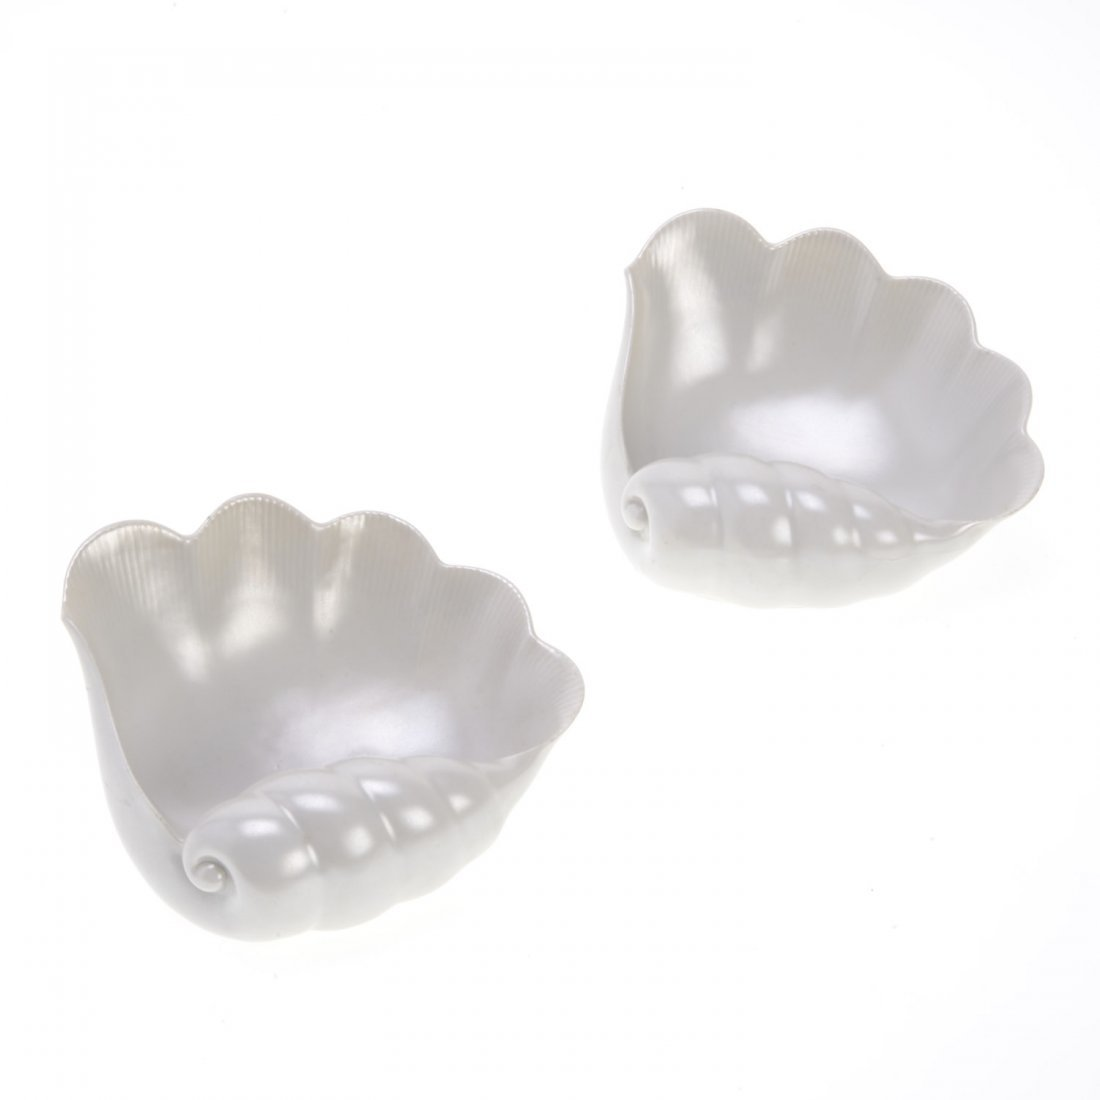 Pair glazed ceramic shell form dishes by Ginori